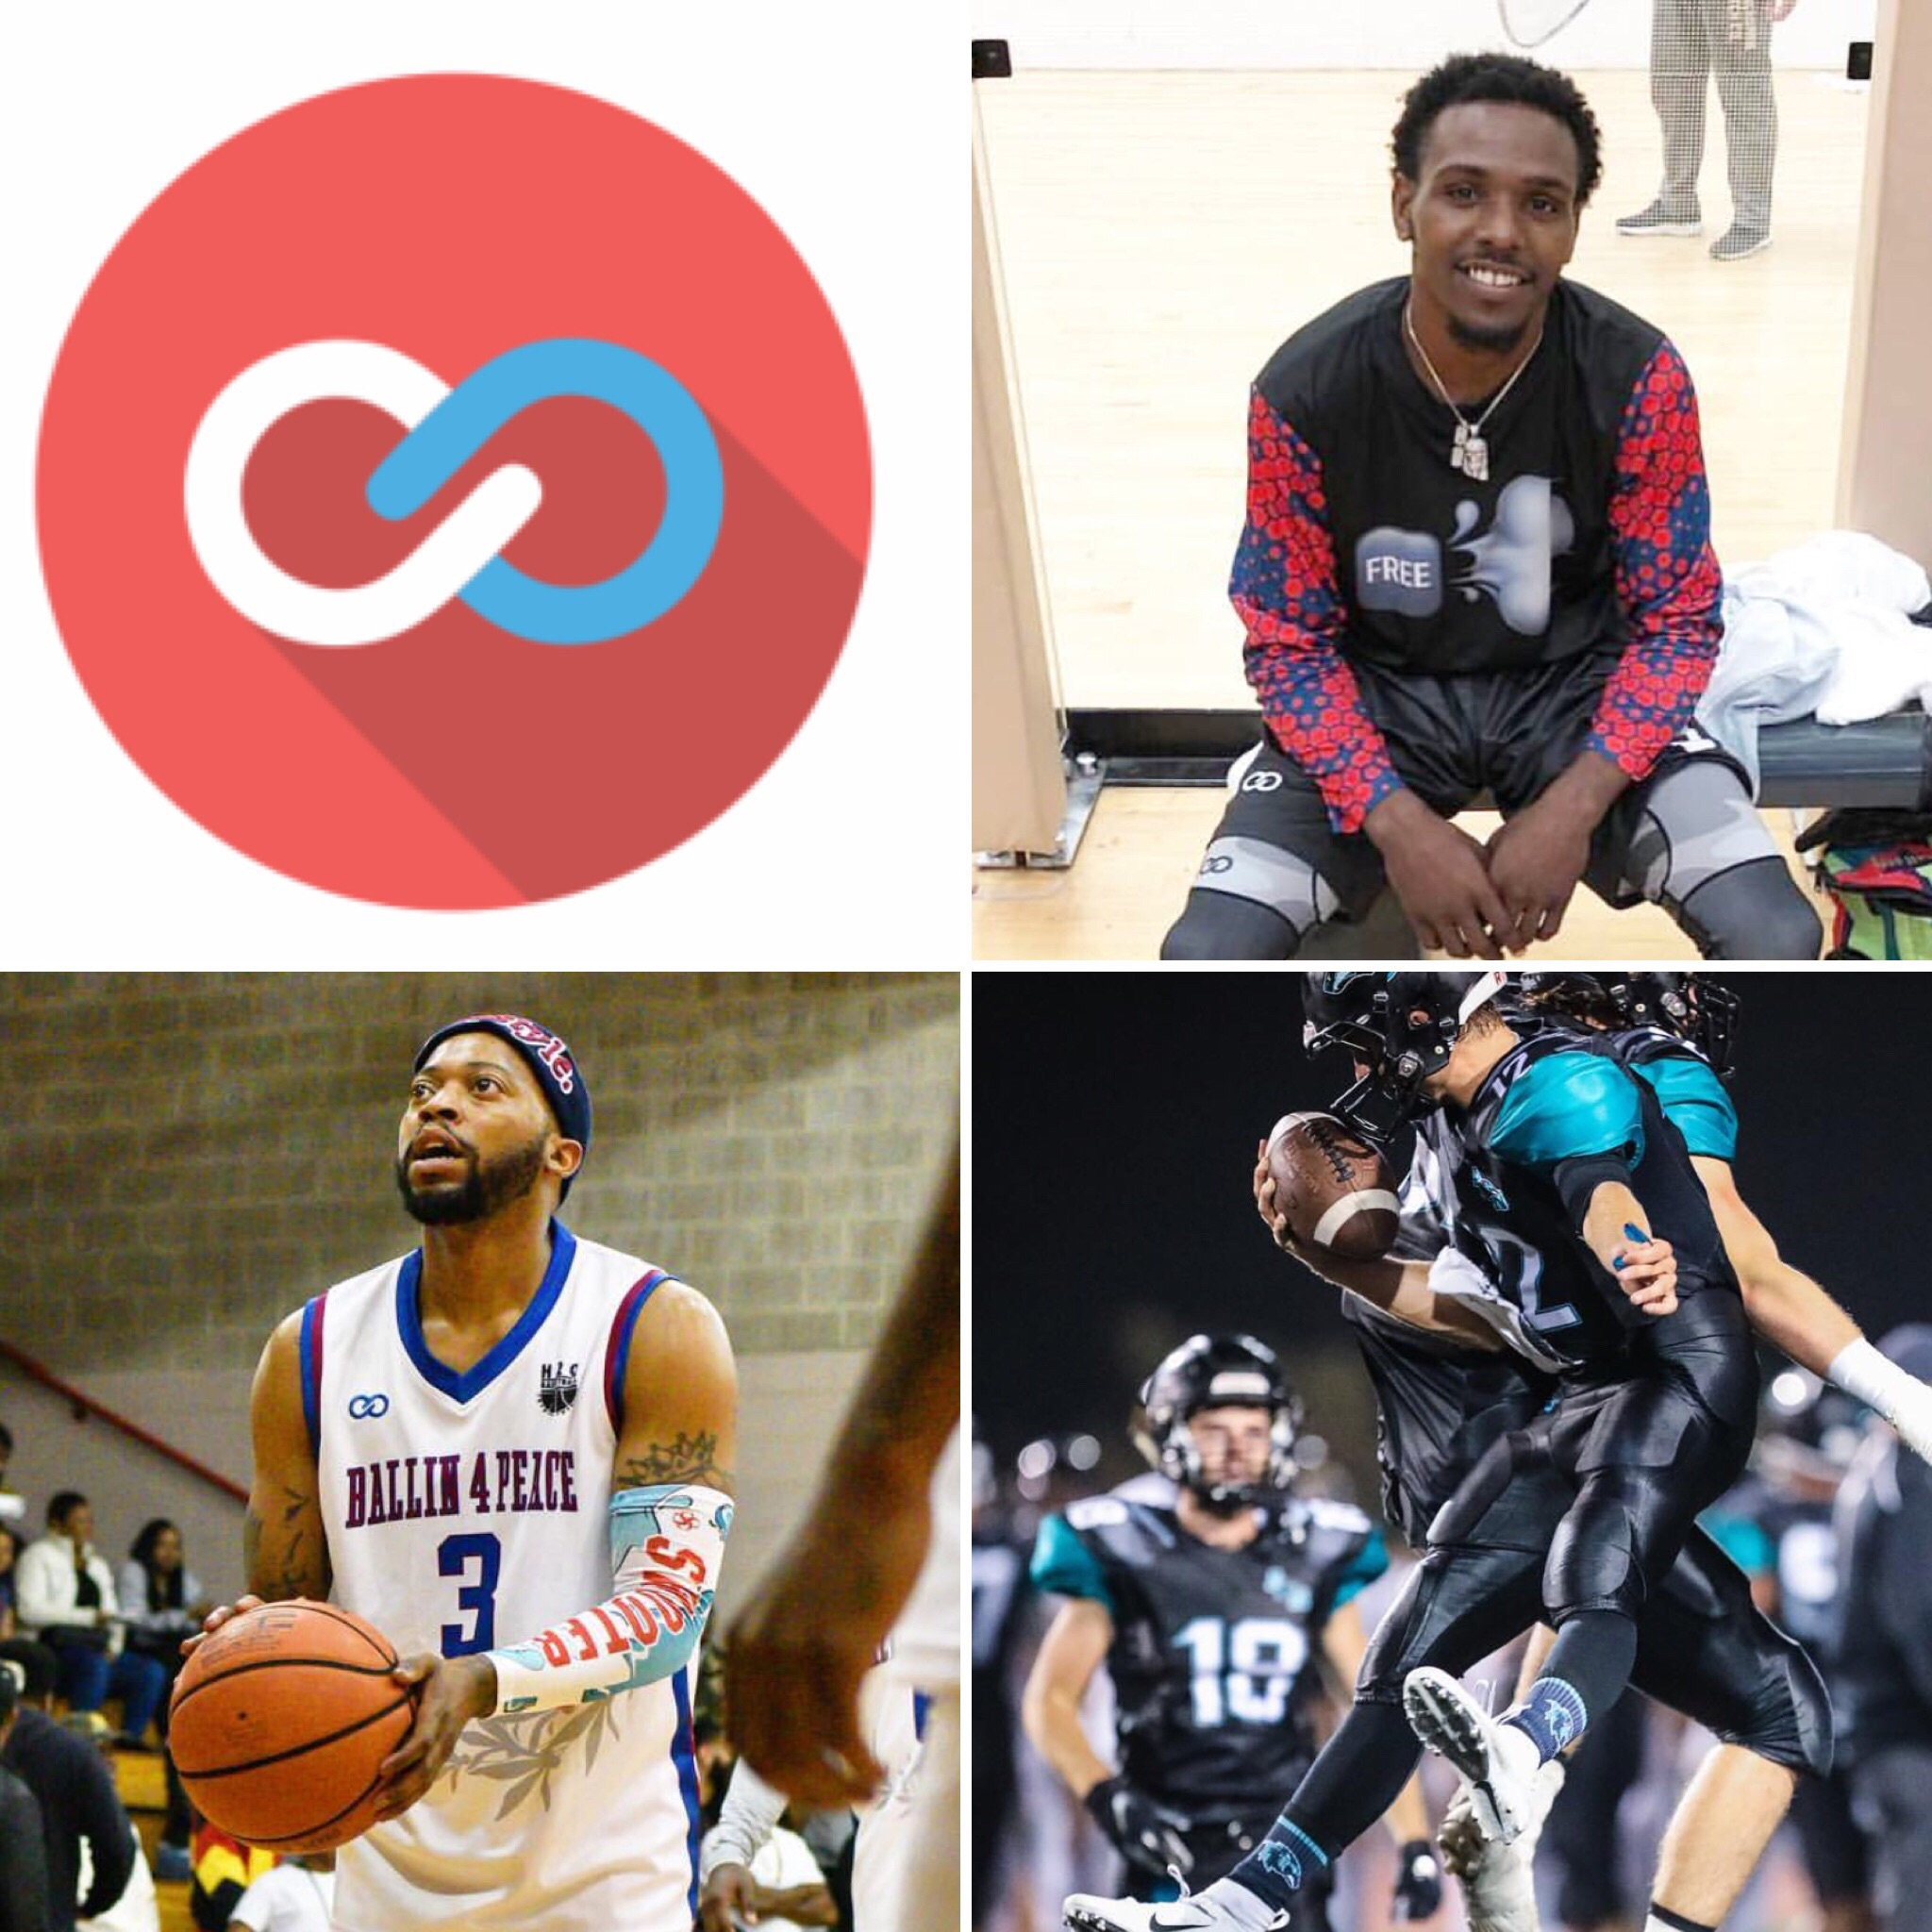 """The work never stops at Wooter Apparel as we bring you the latest news and updates from around Wooter, featuring Haron """"H20"""" Hargrave, Aquille Carr, and the Wolverines football squad from Aliso Niguel High School in California."""